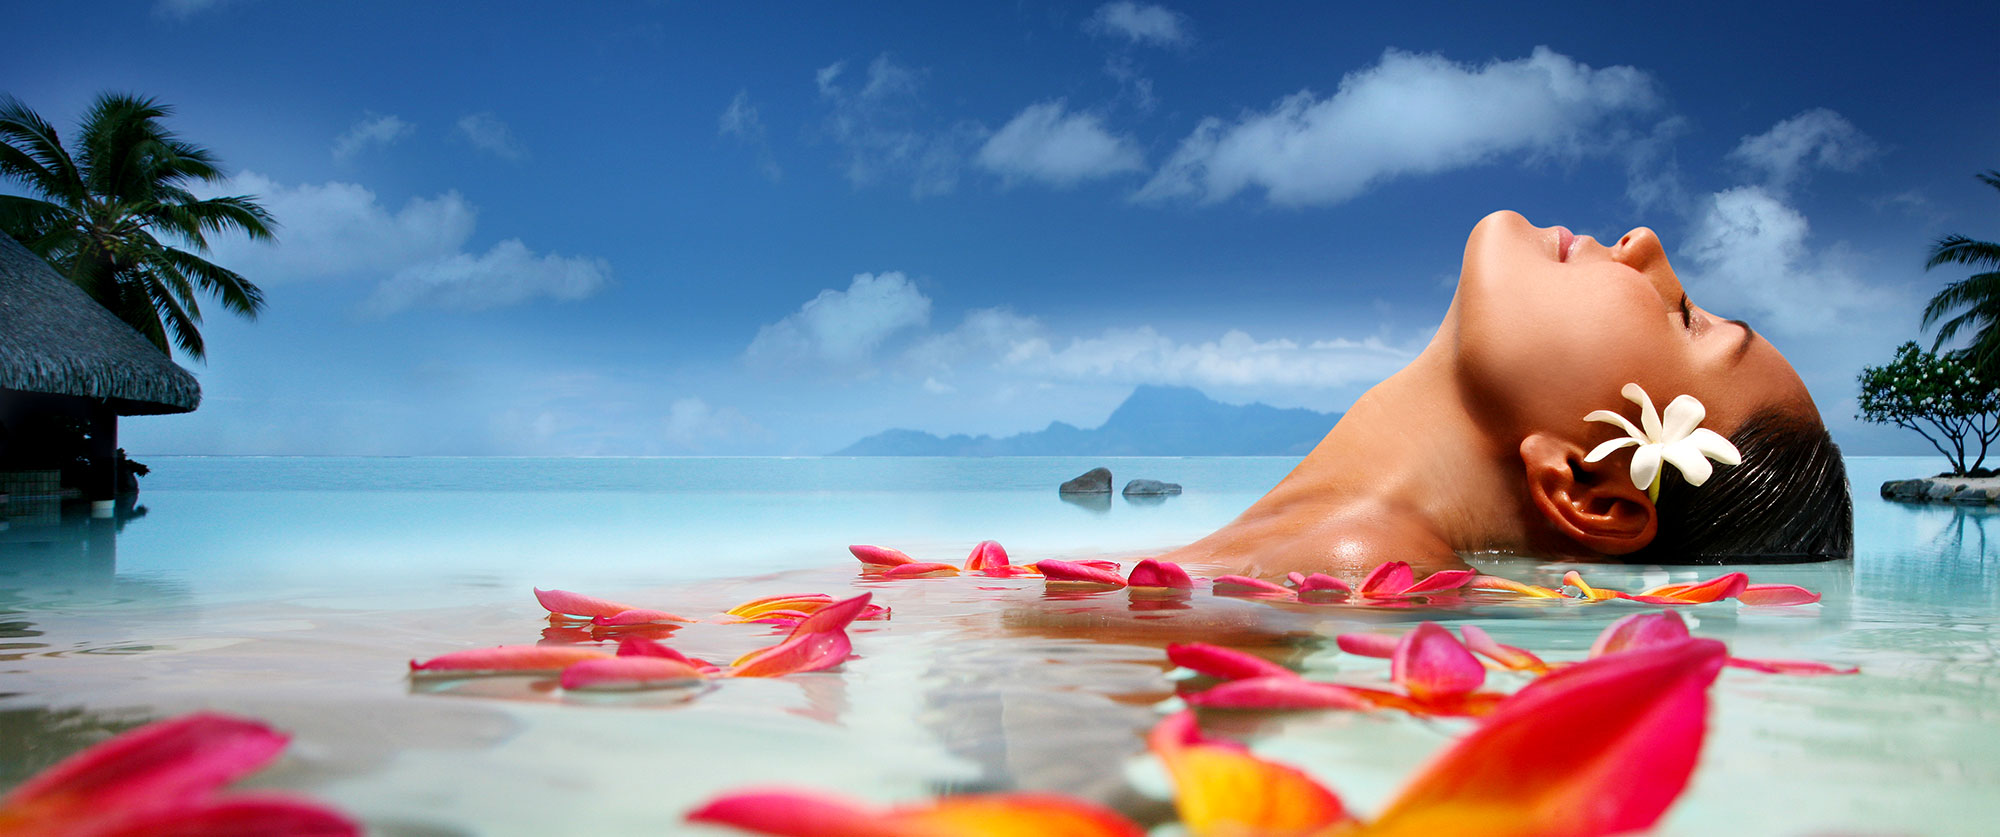 Spa Travel Packages - Australia - New Zealand - Tahiti - Africa - Peaceful - Spa - Relaxation